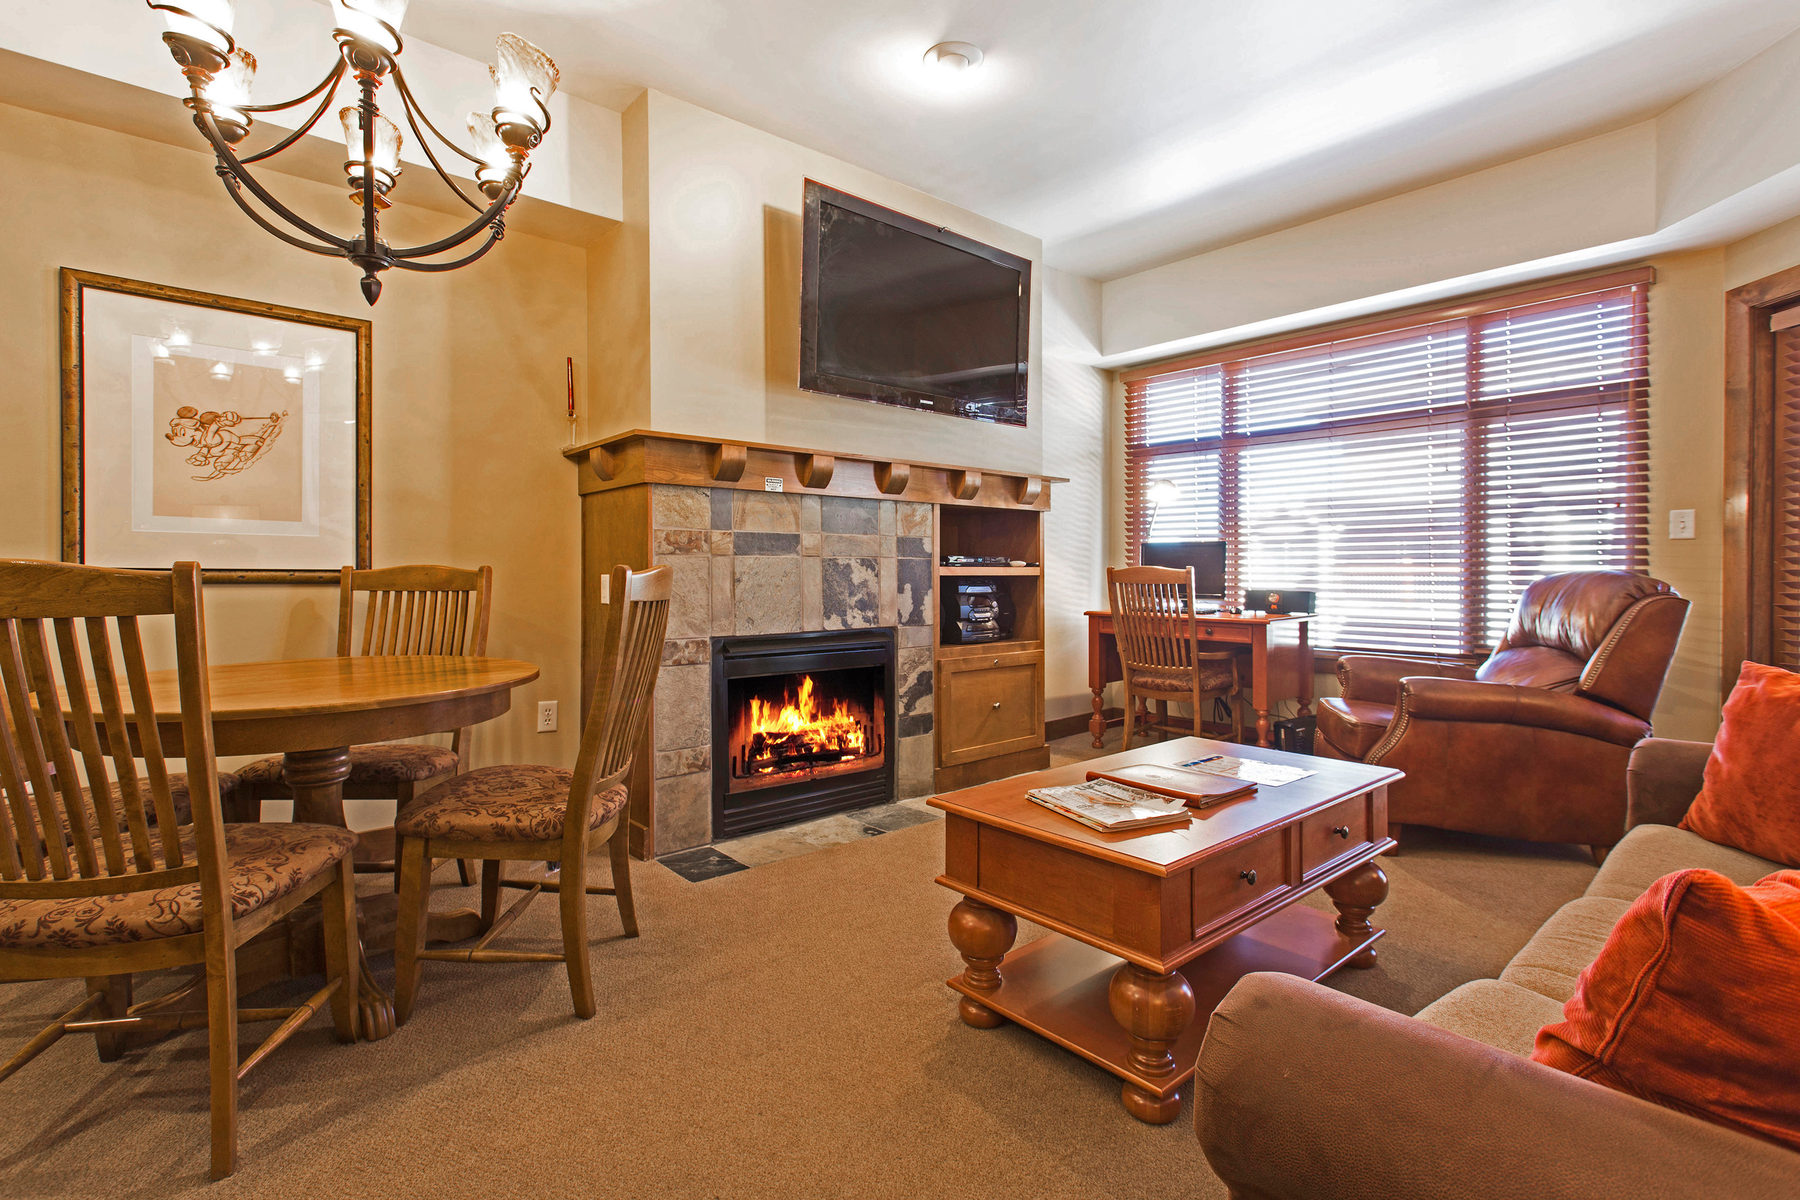 Property For Sale at Fabulous Sundial Lodge 2 Bedroom Unit